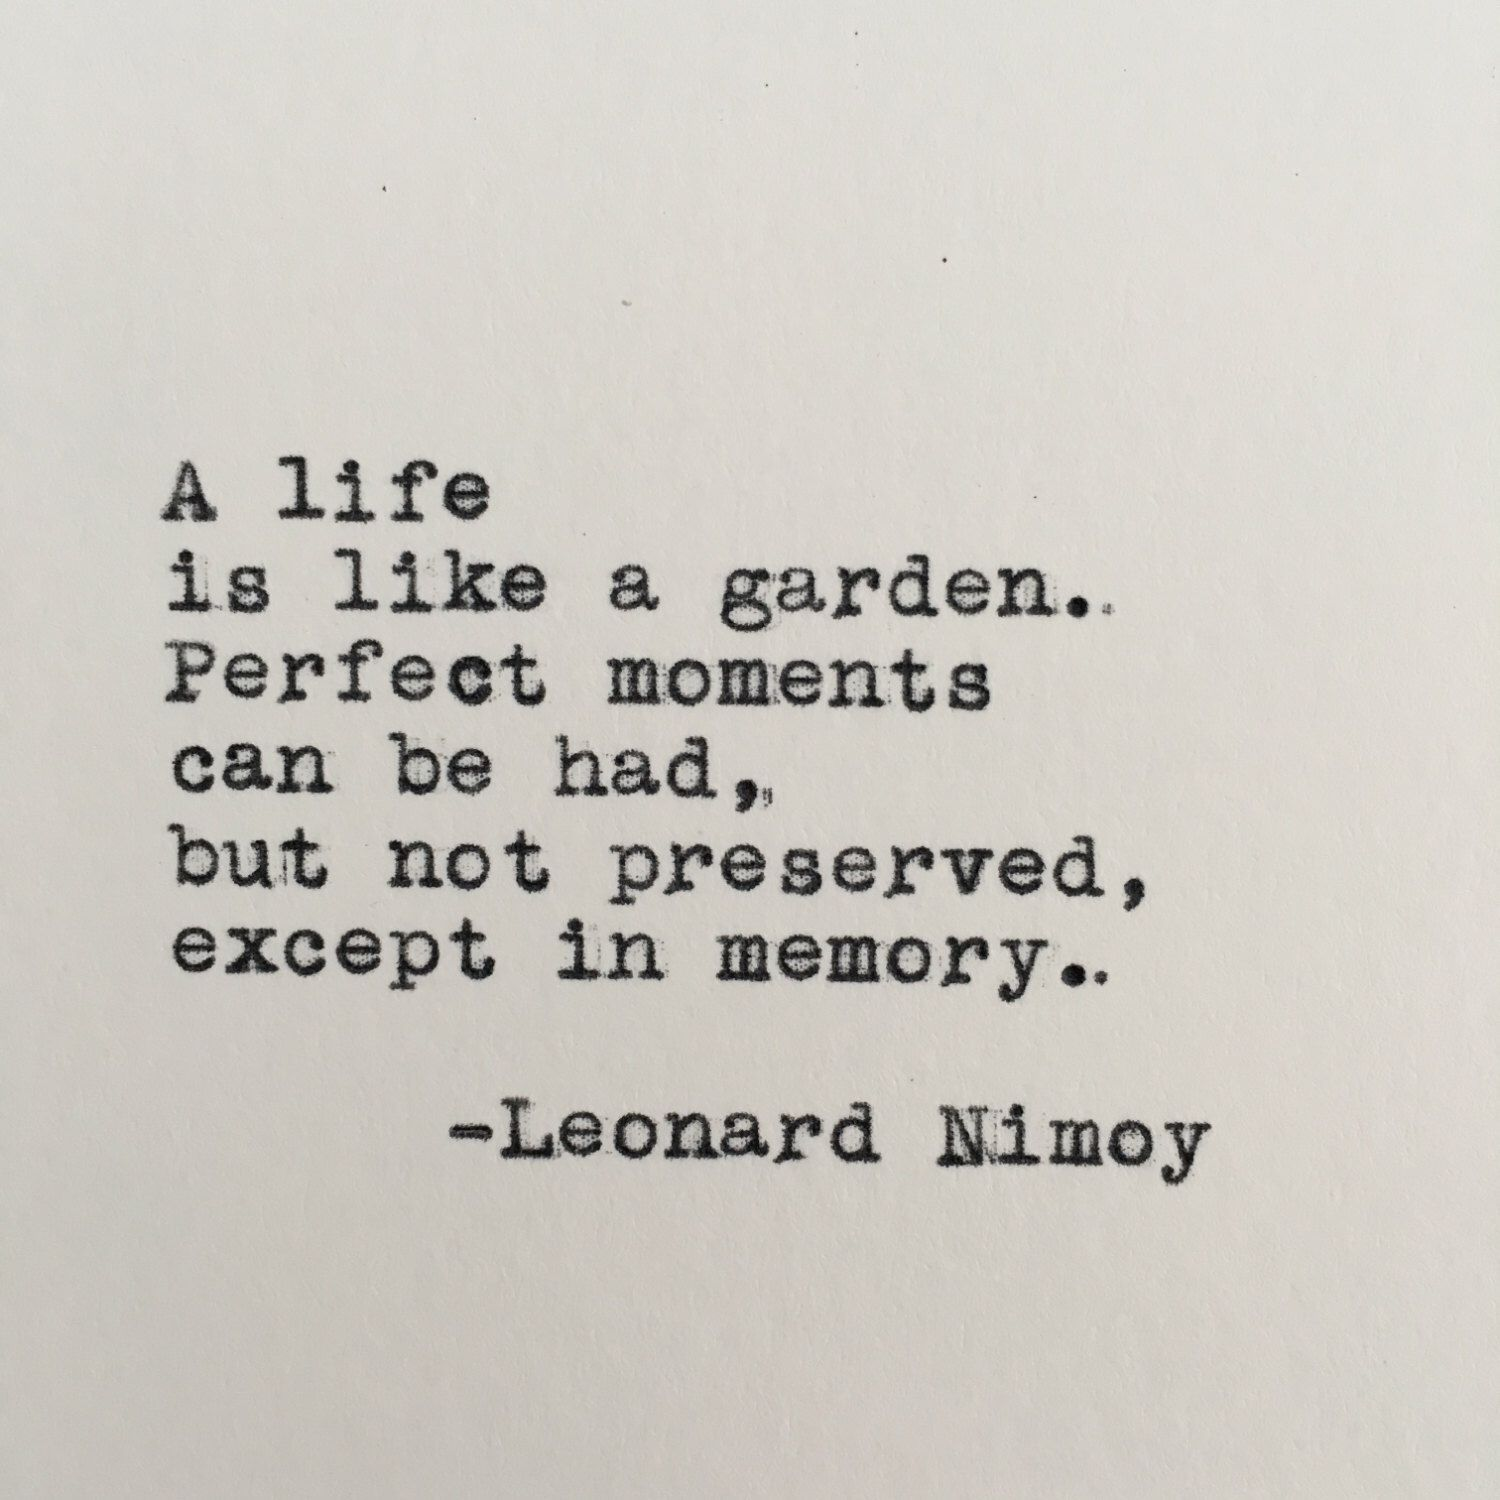 Leonard Nimoy Quotes Leonard Nimoy Quote Typed On Typewriter  4X6 White Cardstock.